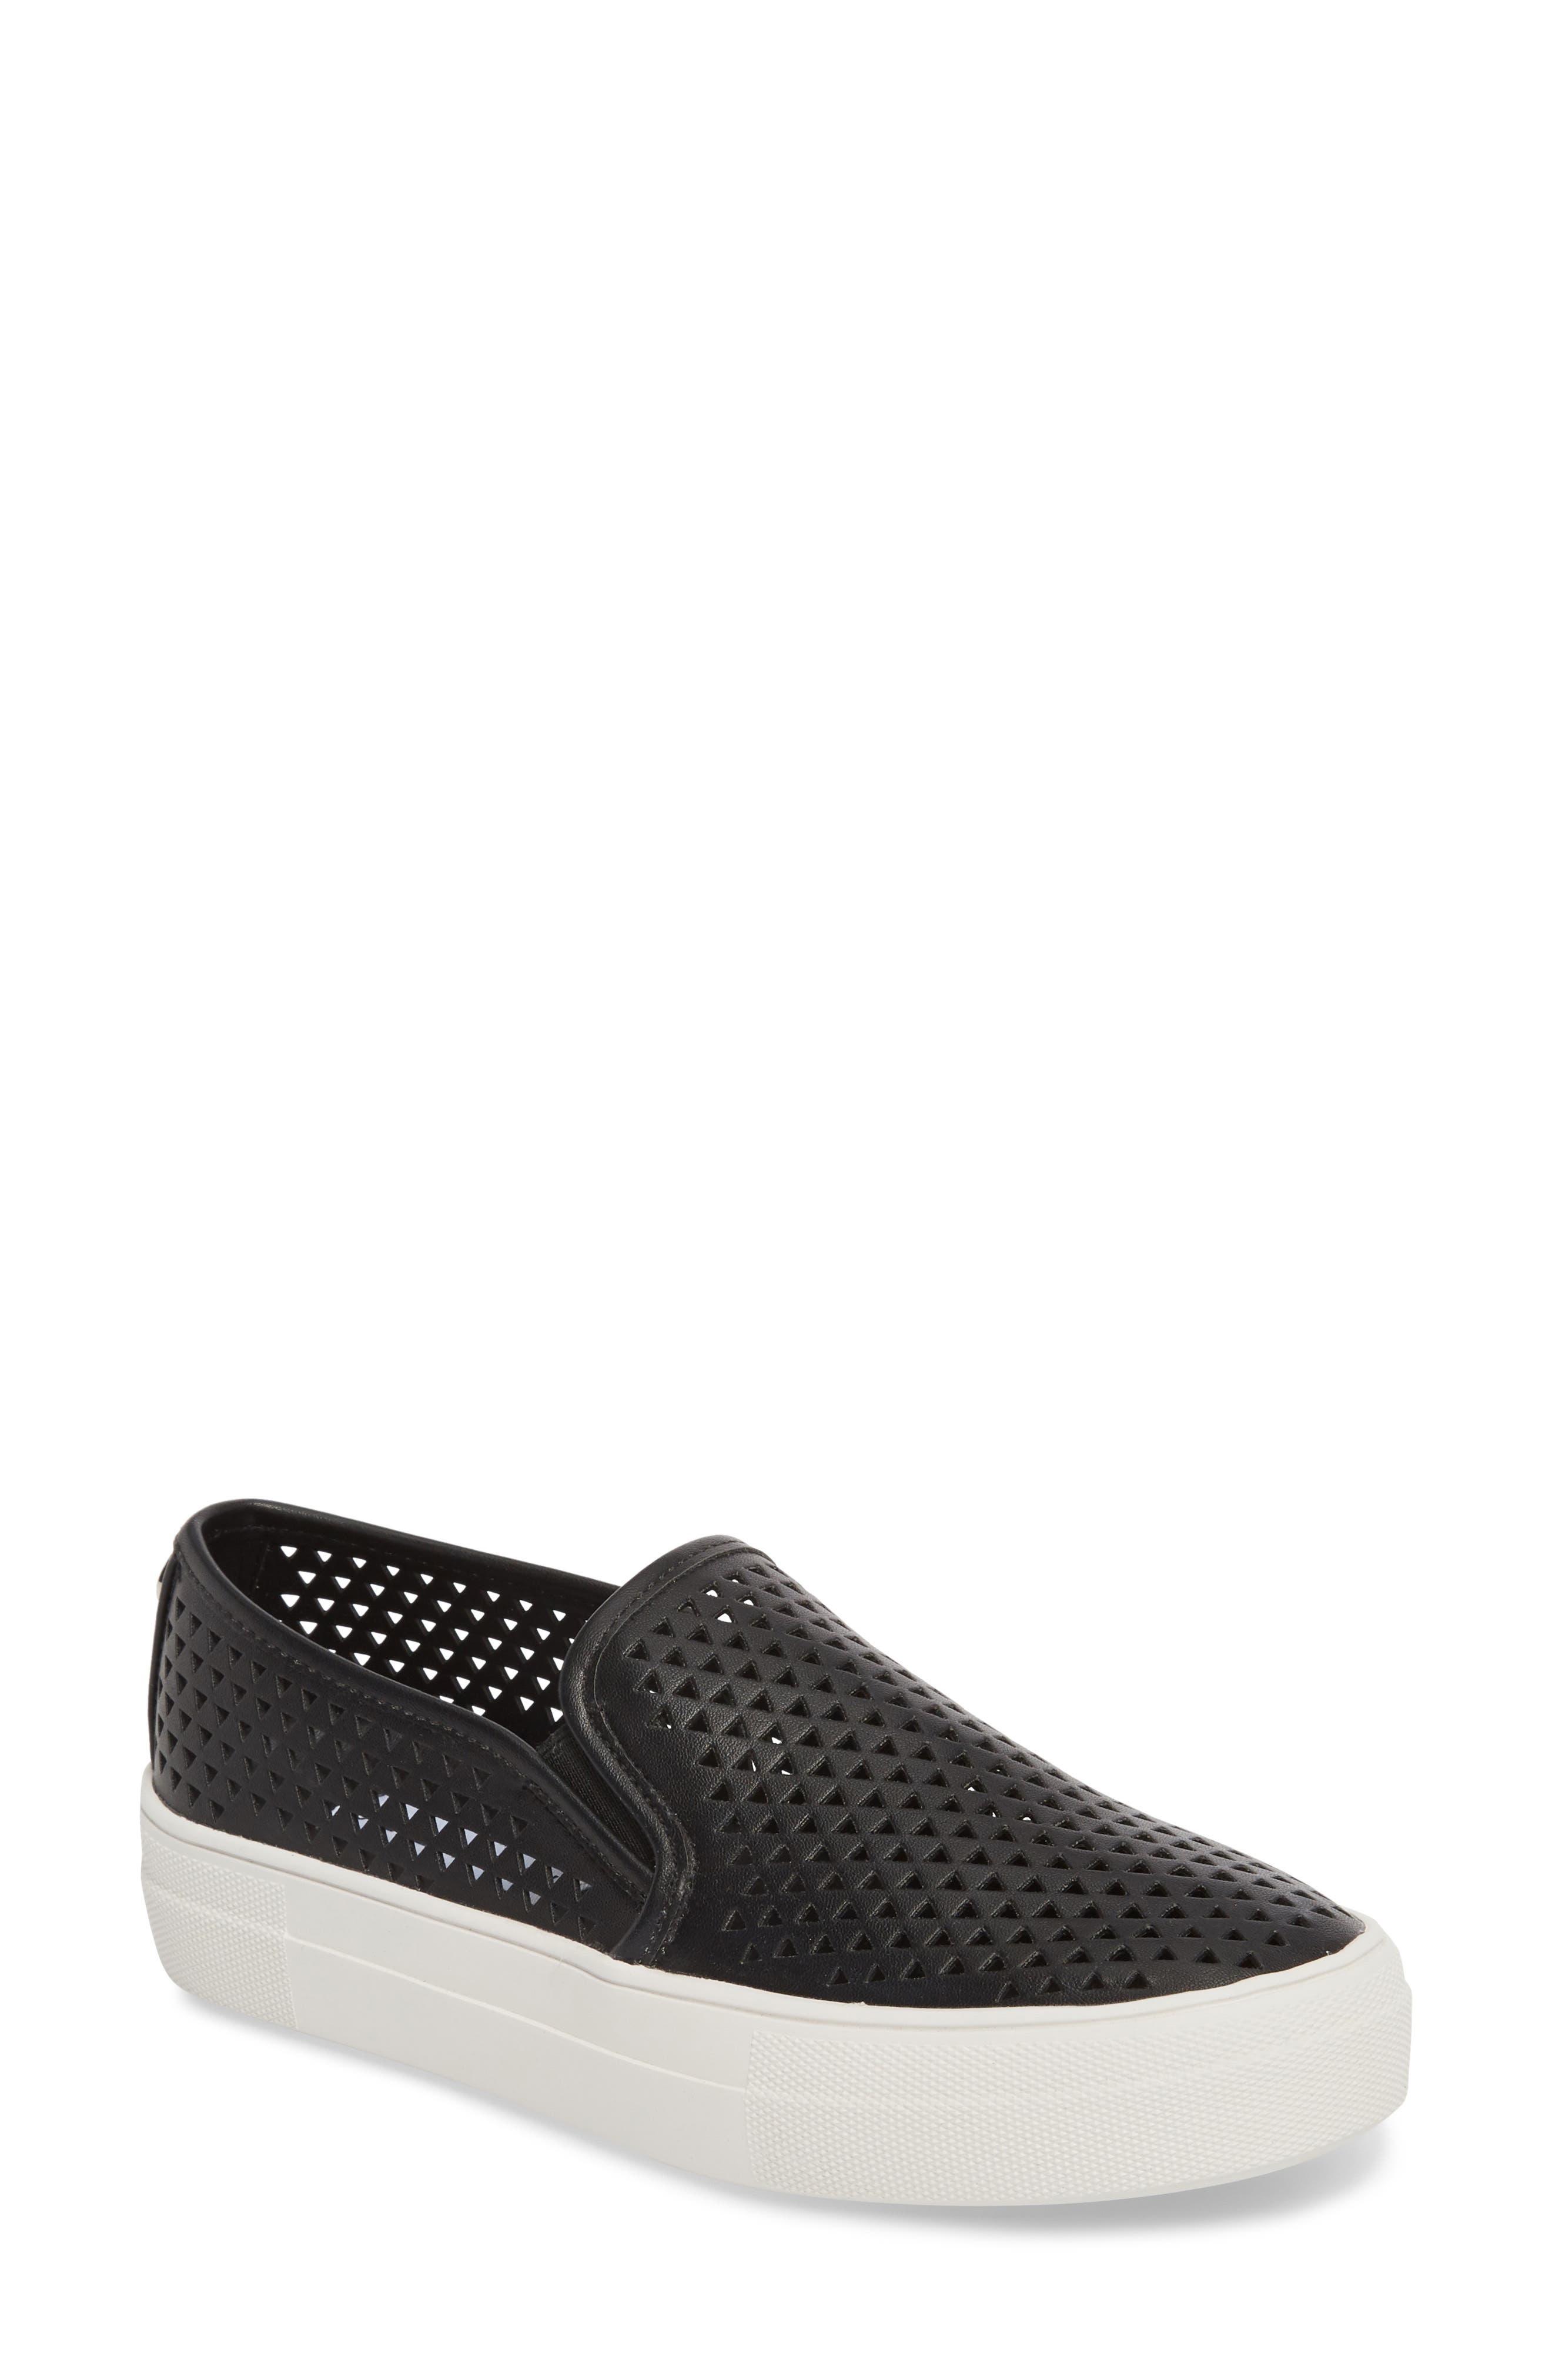 Gal-P Perforated Slip-On Sneaker,                             Main thumbnail 1, color,                             Black